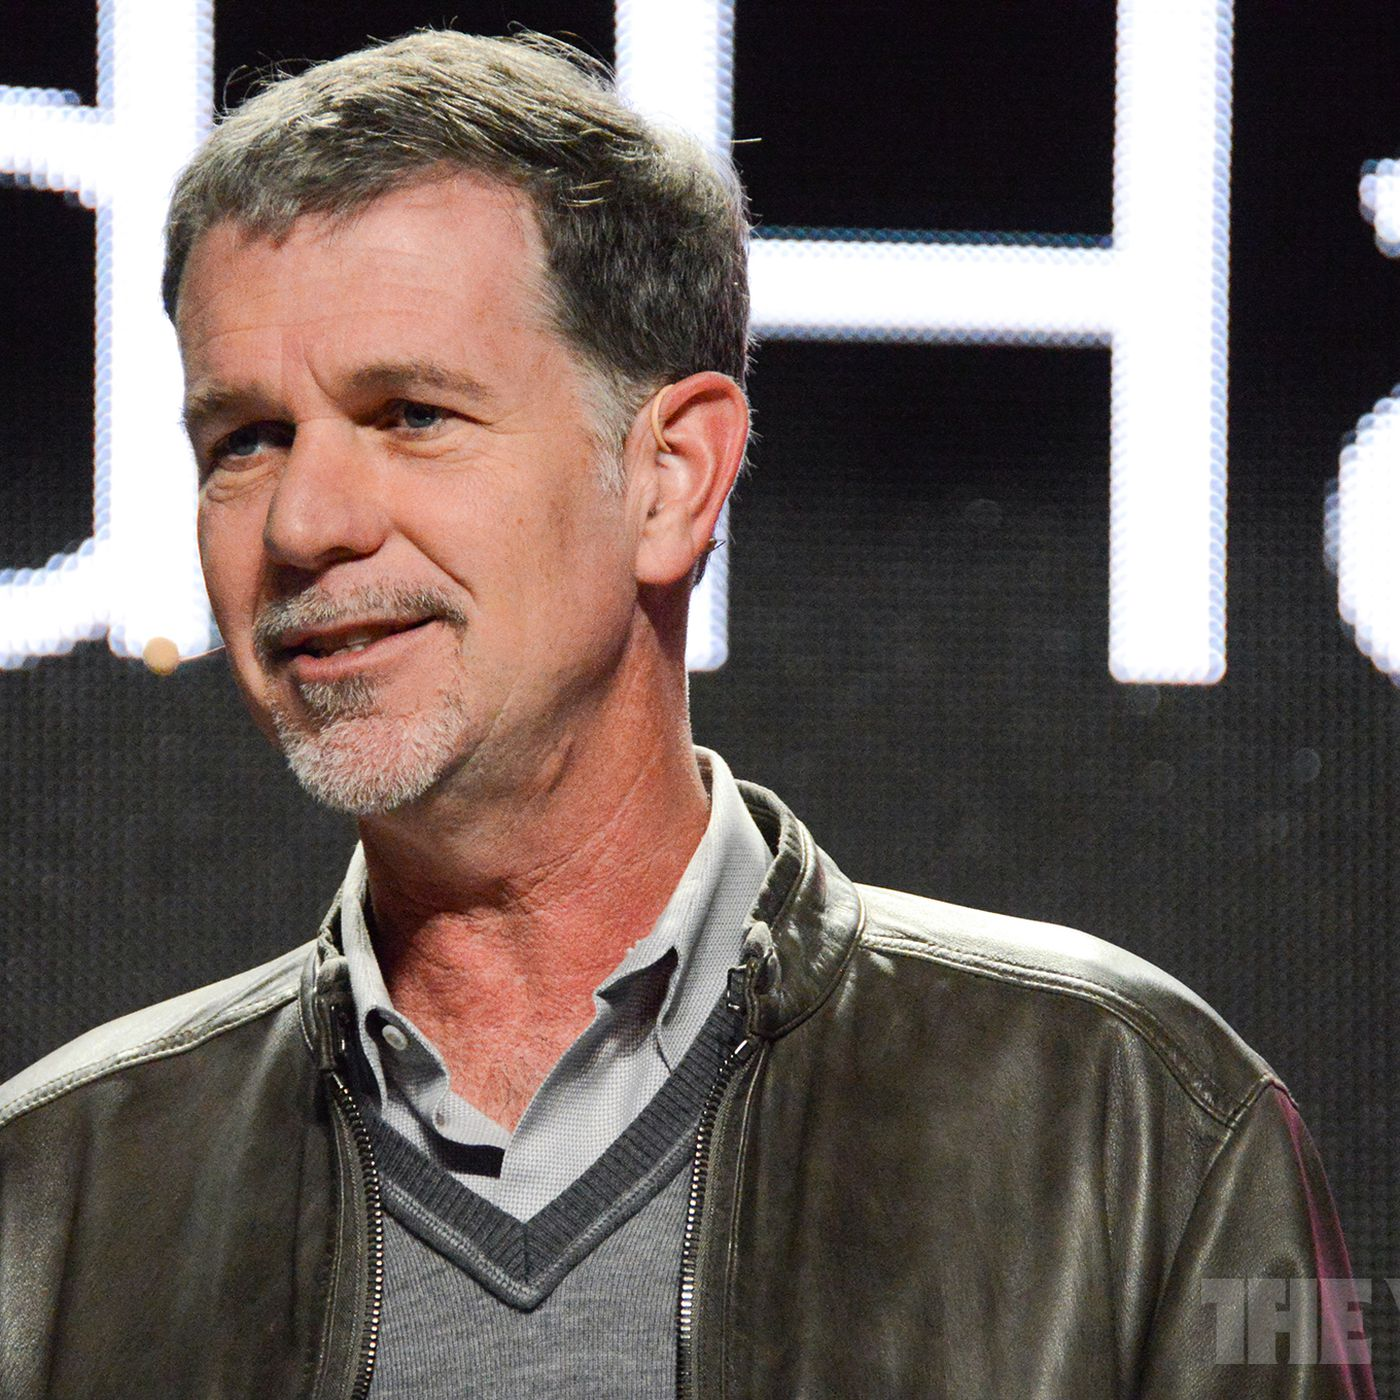 Netflix S Reed Hastings Jokes That Hbo Ceo S Password Is Netflix